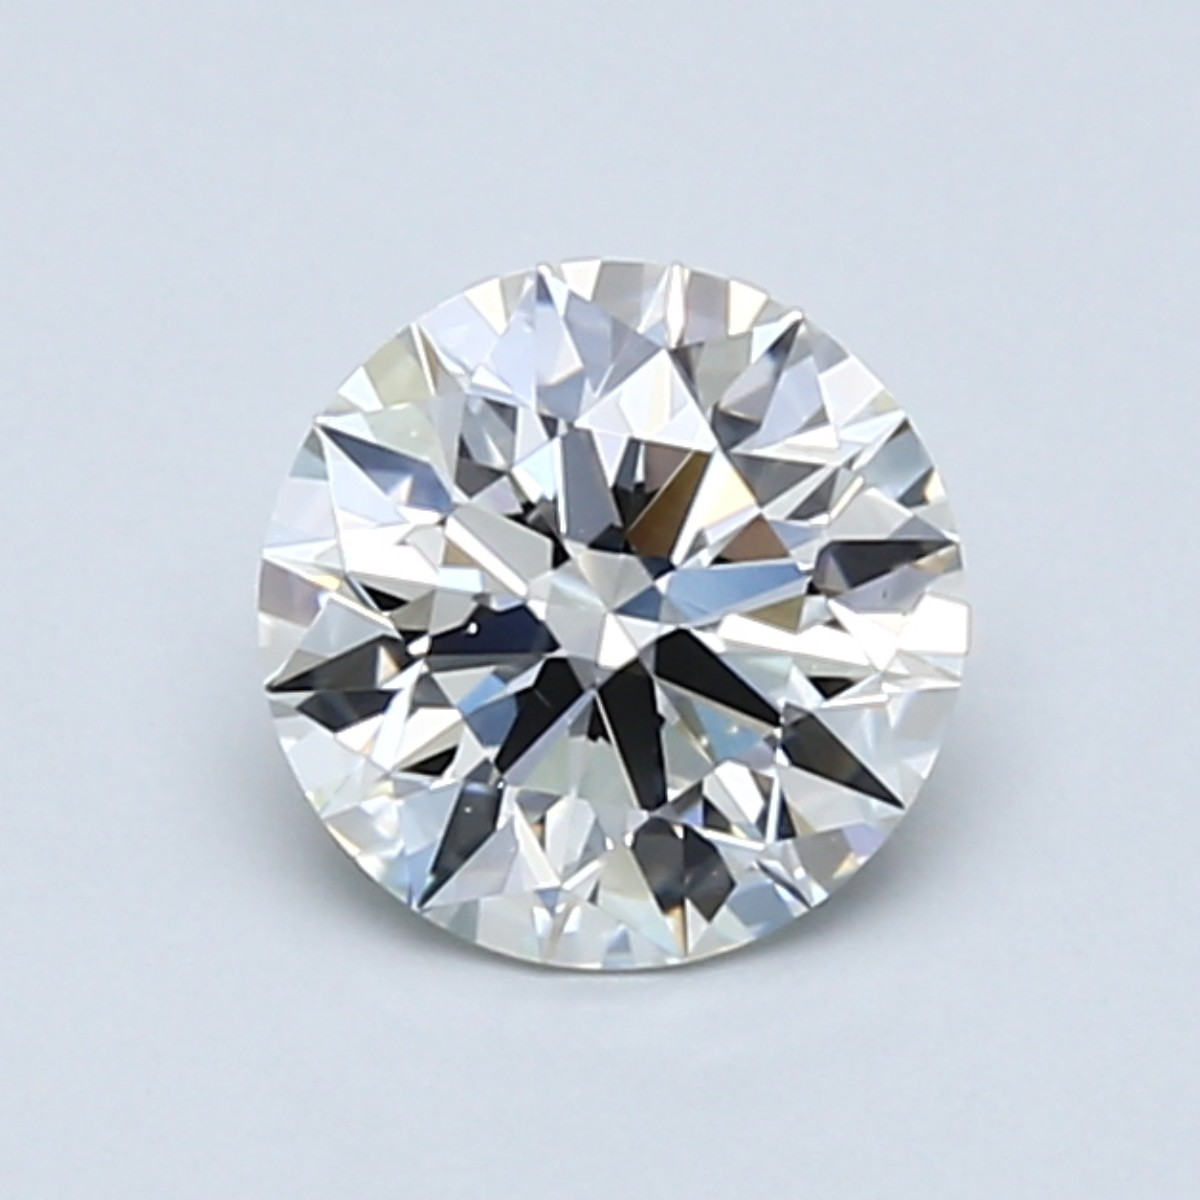 Round 1.01 Carat G Color VS2 Clarity For Sale